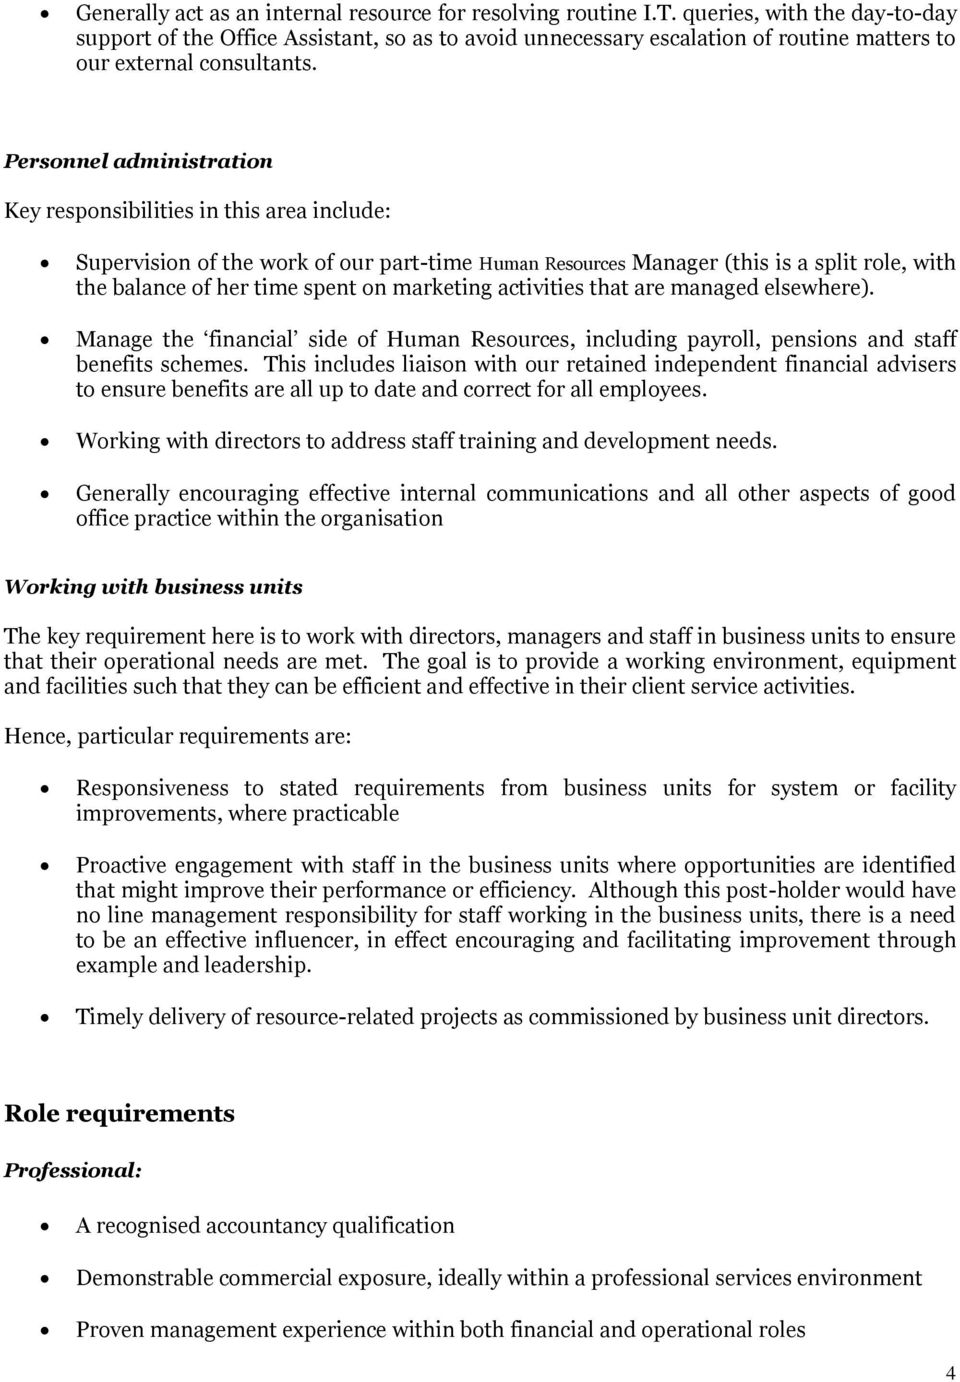 Personnel administration Key responsibilities in this area include: Supervision of the work of our part-time Human Resources Manager (this is a split role, with the balance of her time spent on